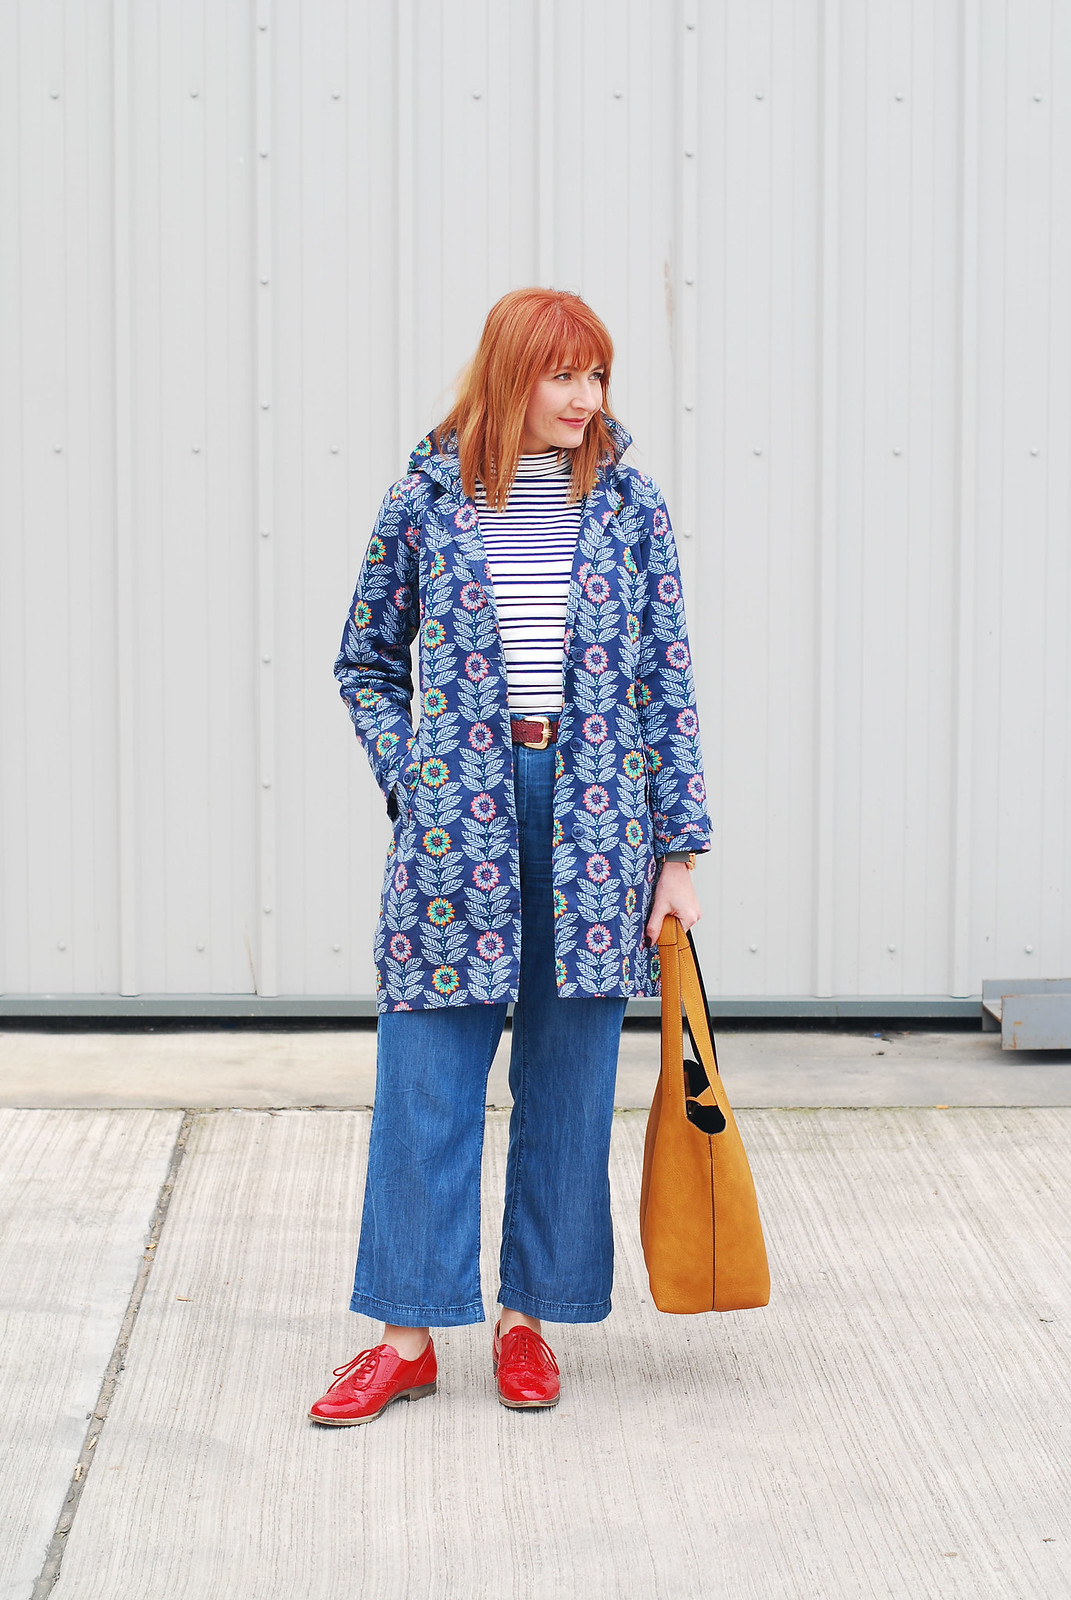 Bright spring weather outfit: Floral Seasalt raincoat \ high neck stripe Breton top \ wide leg cotton denim trousers \ red brogues \ ochre bucket bag | Not Dressed As Lamb, over 40 style